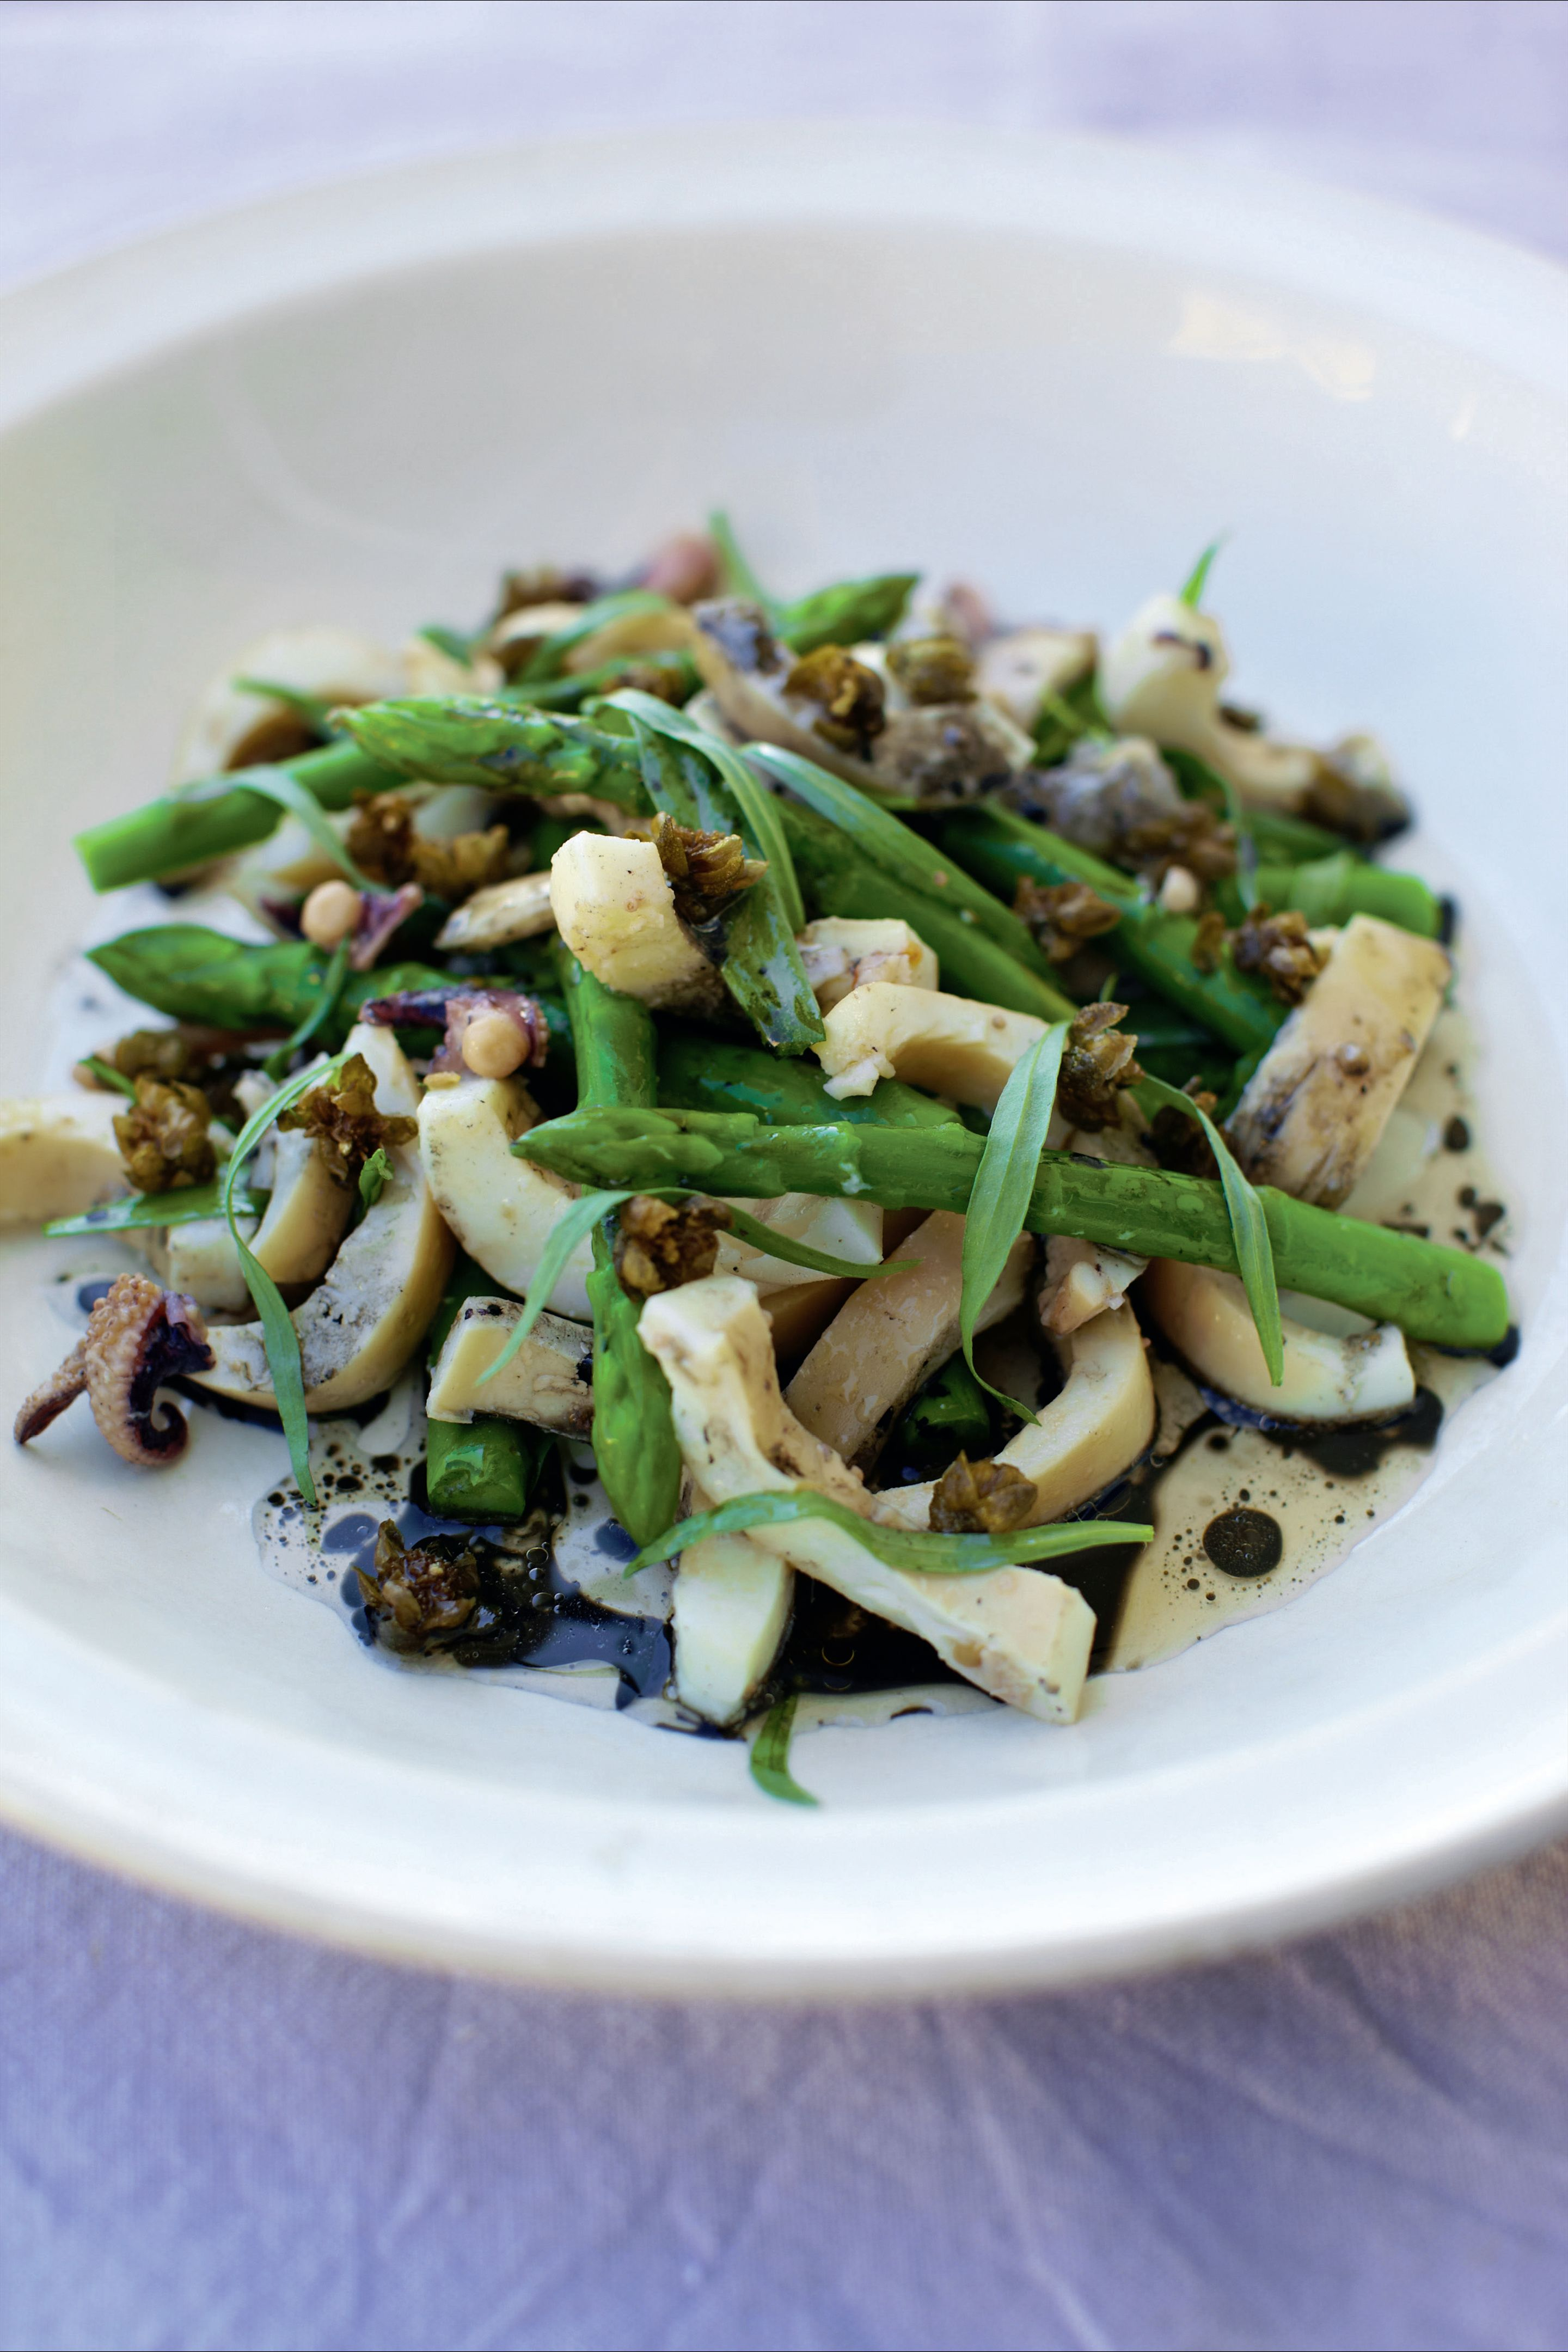 Warm salad of cuttlefish and asparagus with cuttlefish ink dressing